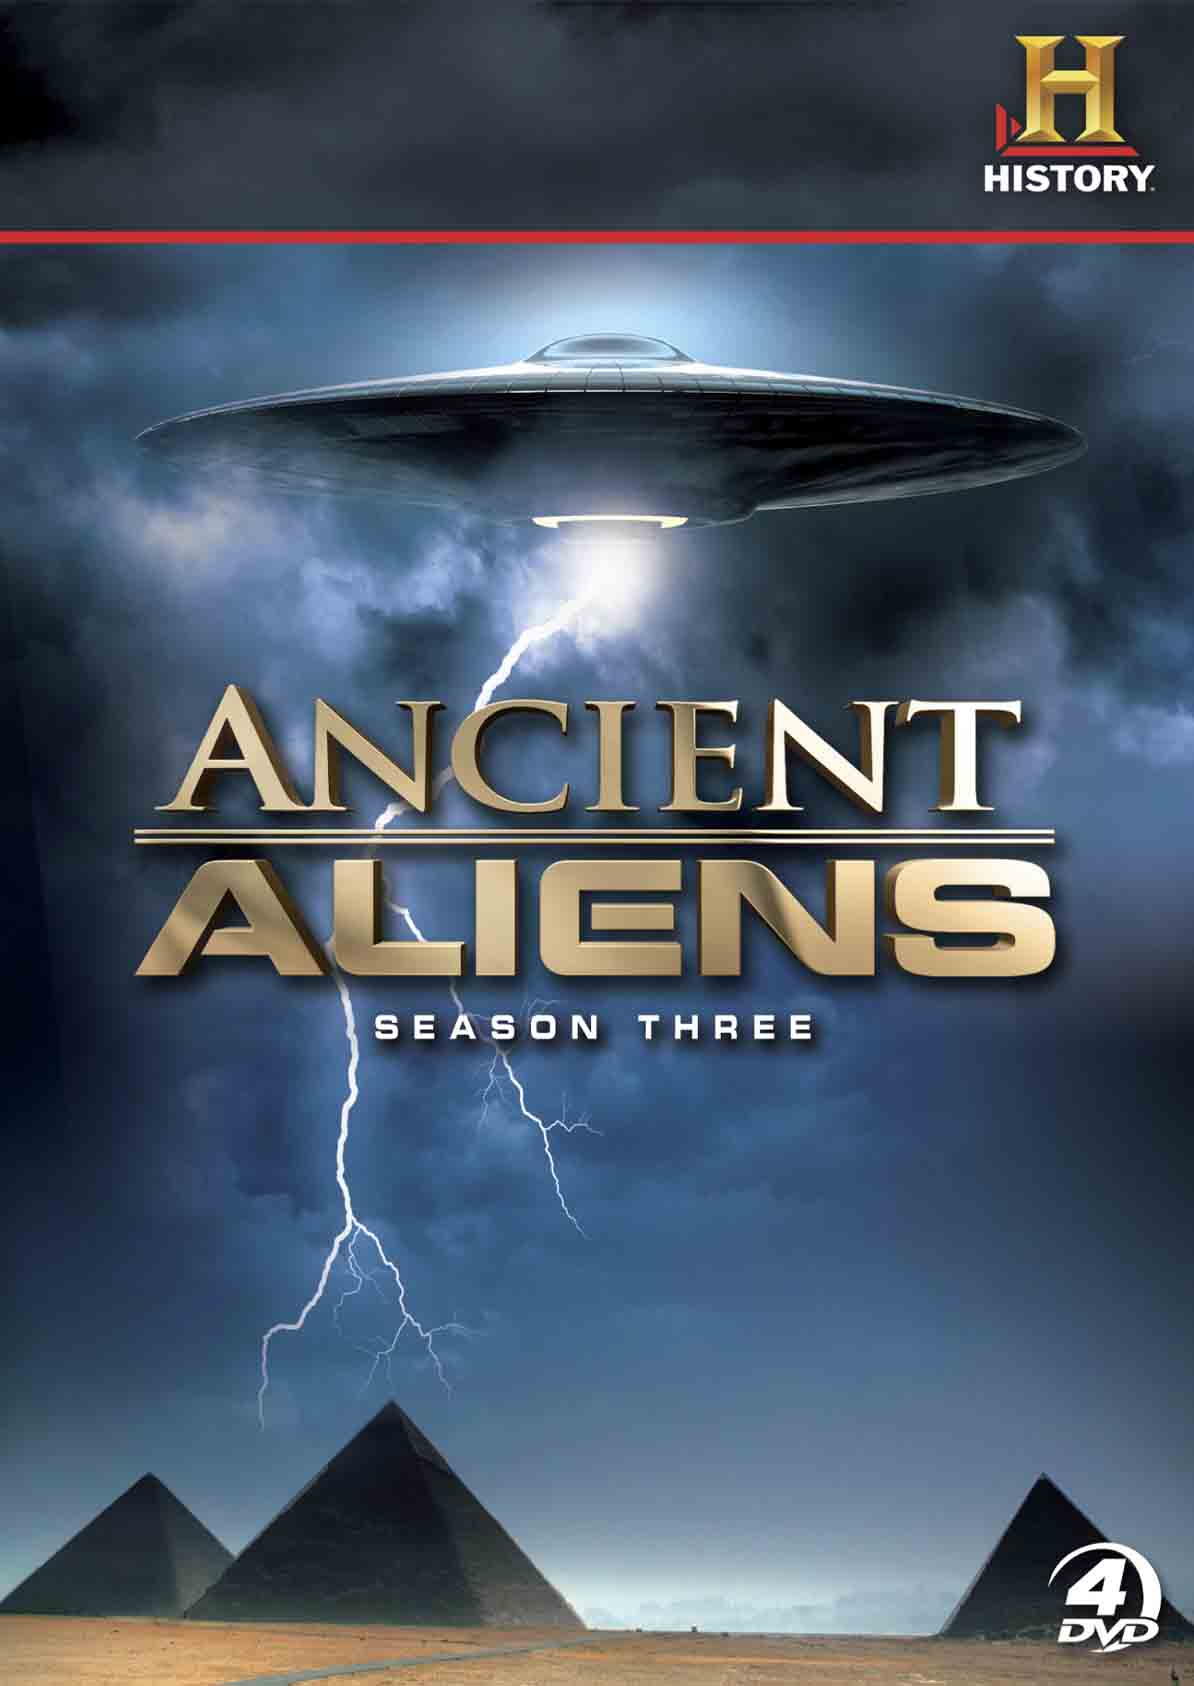 The Main Story Line Of This Movie Revolves Around Dr Shaw Archaeologists Researcher Discovering The Same Star Map Repeated In Various Cultures Across